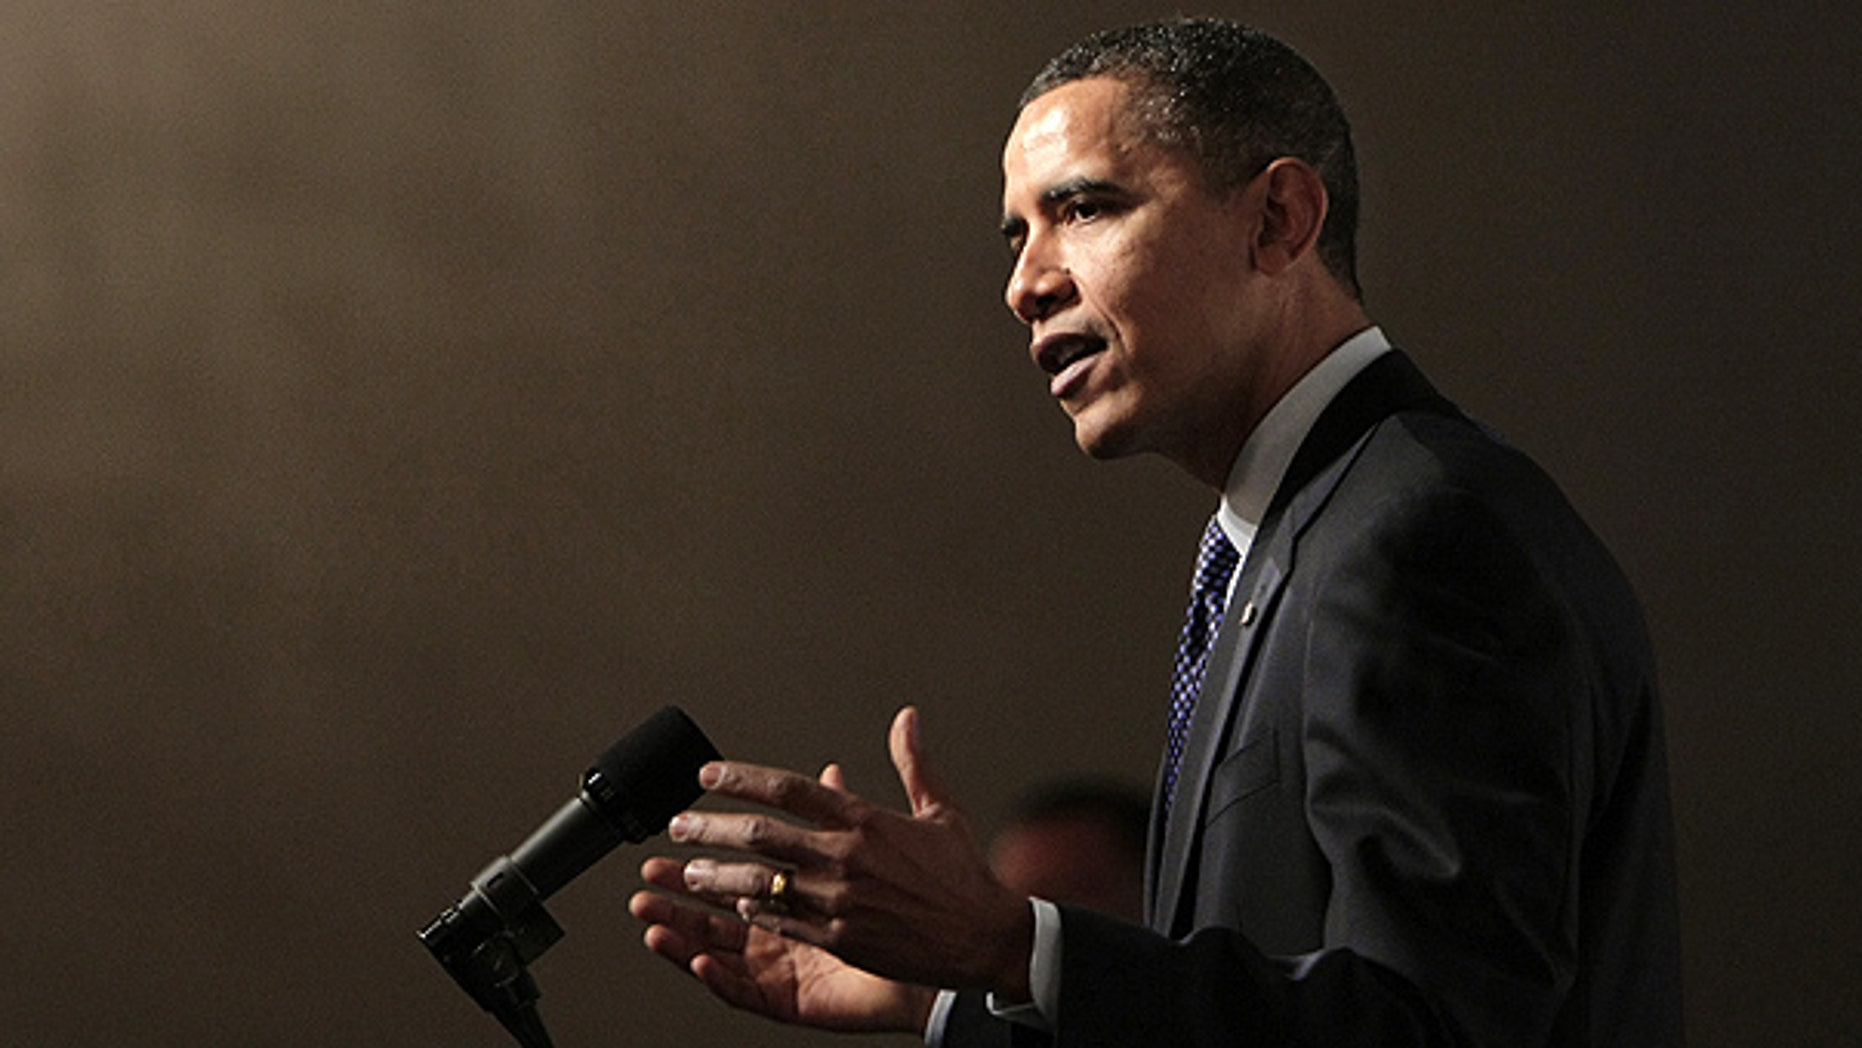 Feb. 24: President Obama discusses the economy at the St. Regis Hotel in Washington.